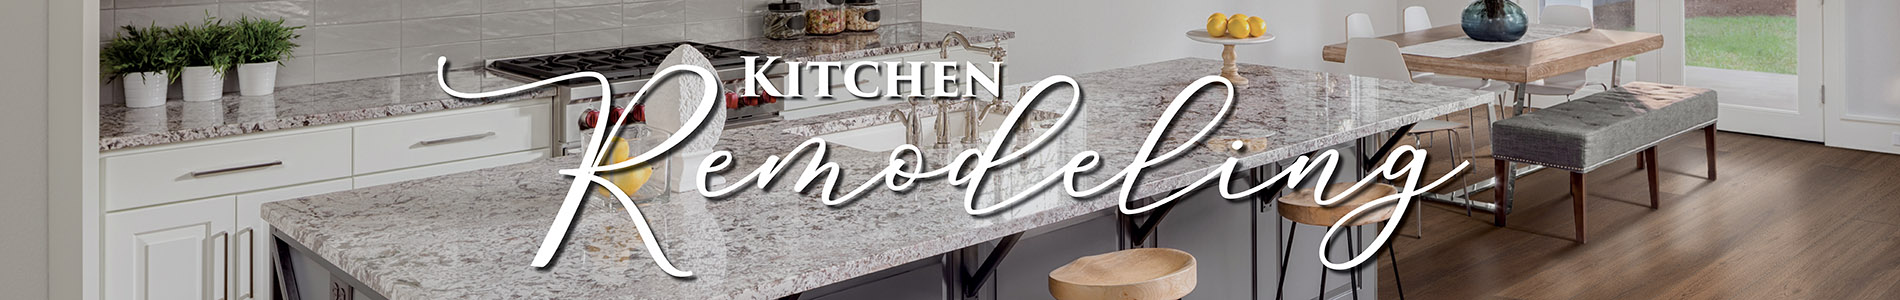 Kitchen remodeling at Flooring USA